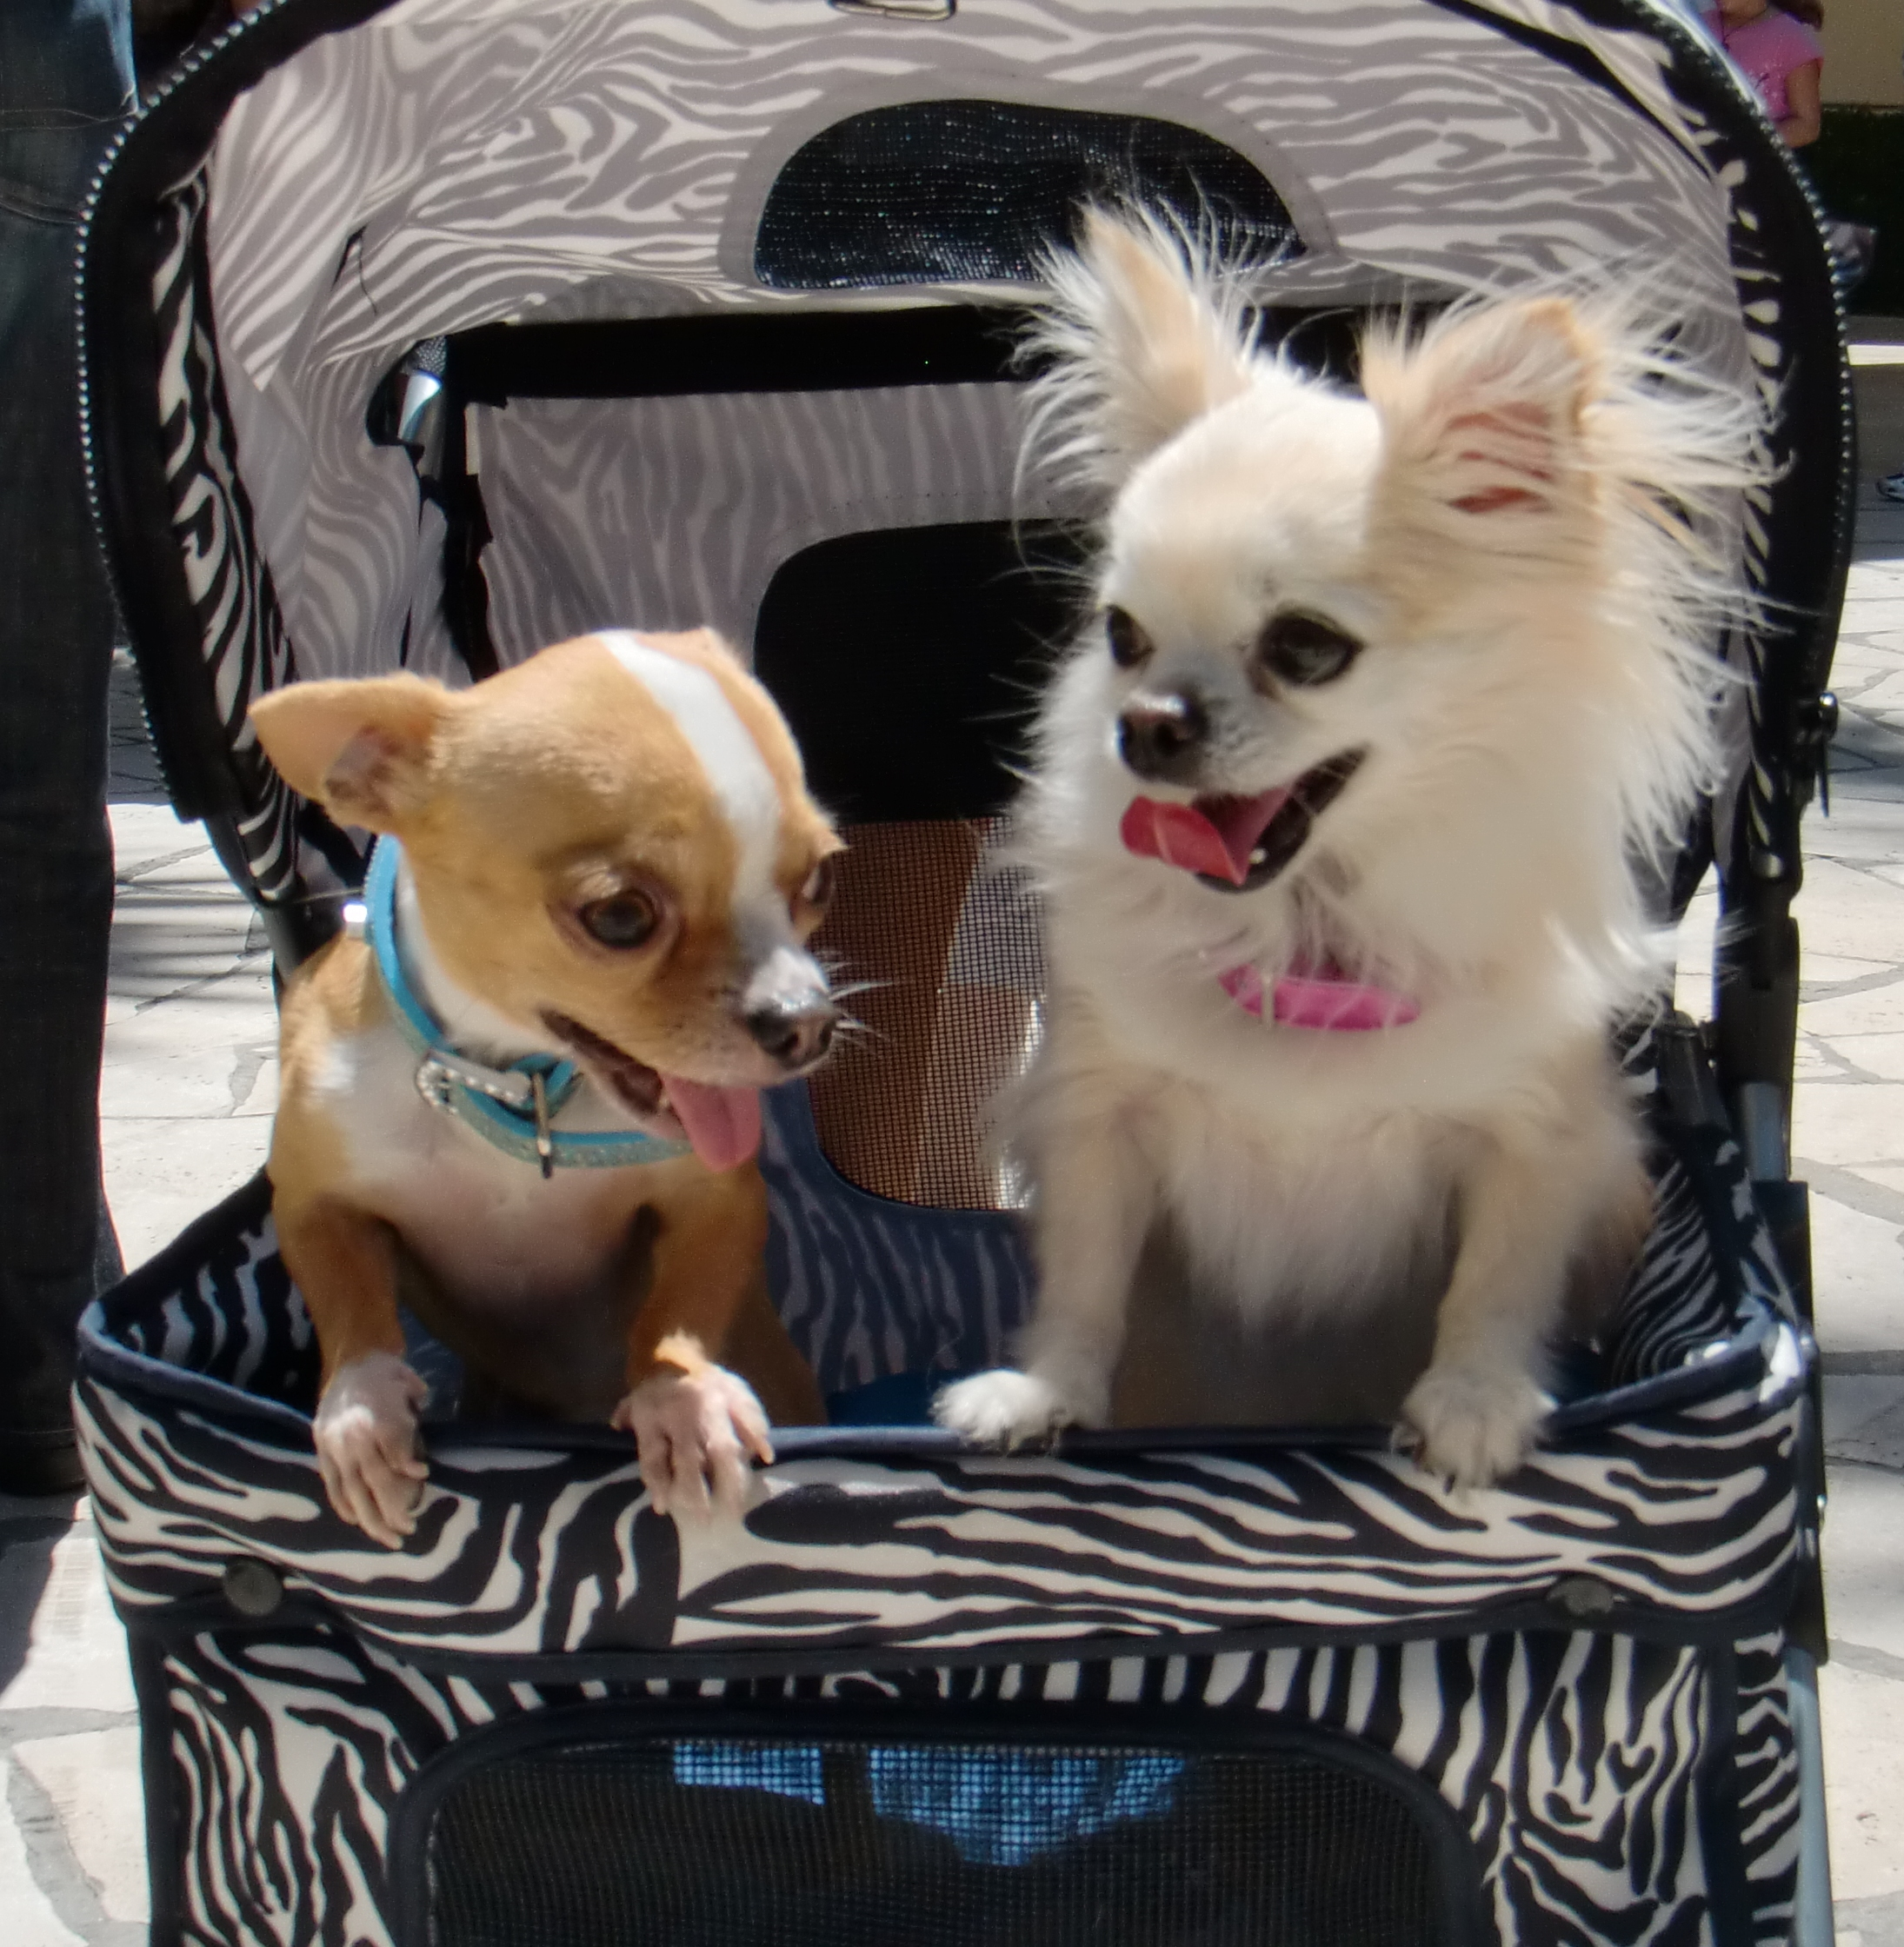 Chihuahuas in a stroller